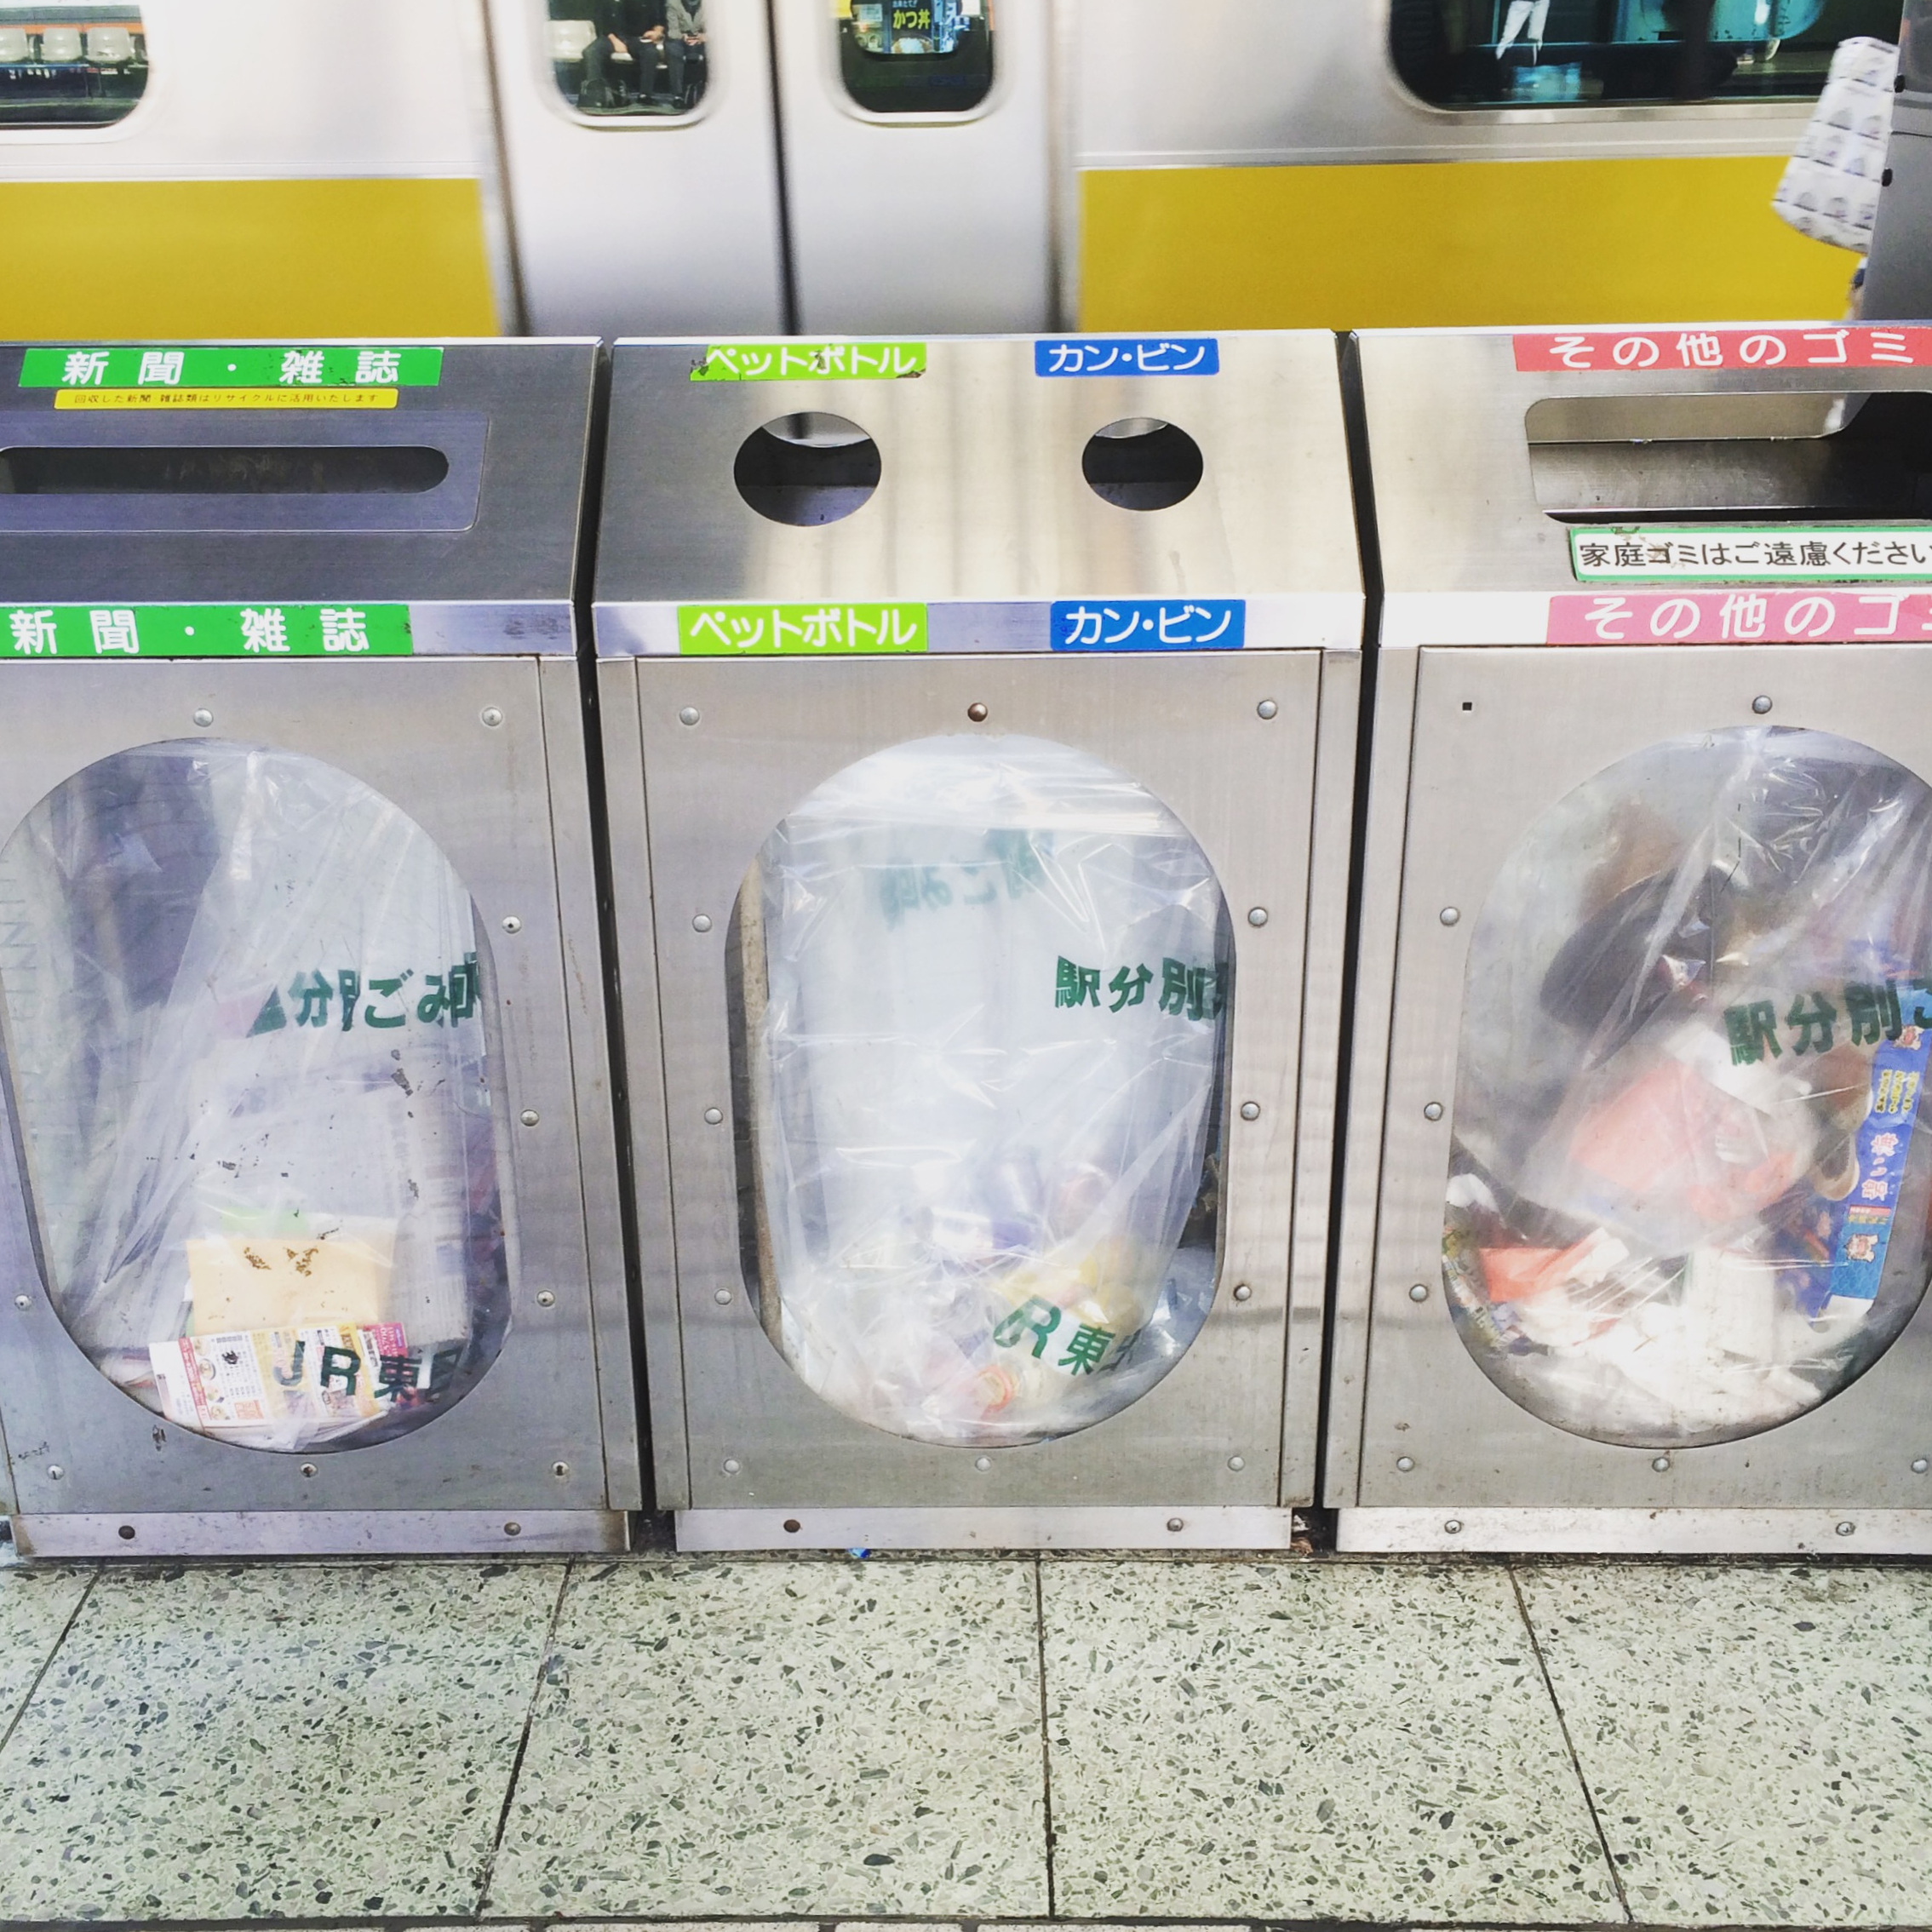 Waste bins in Osaka Train Station (2017).